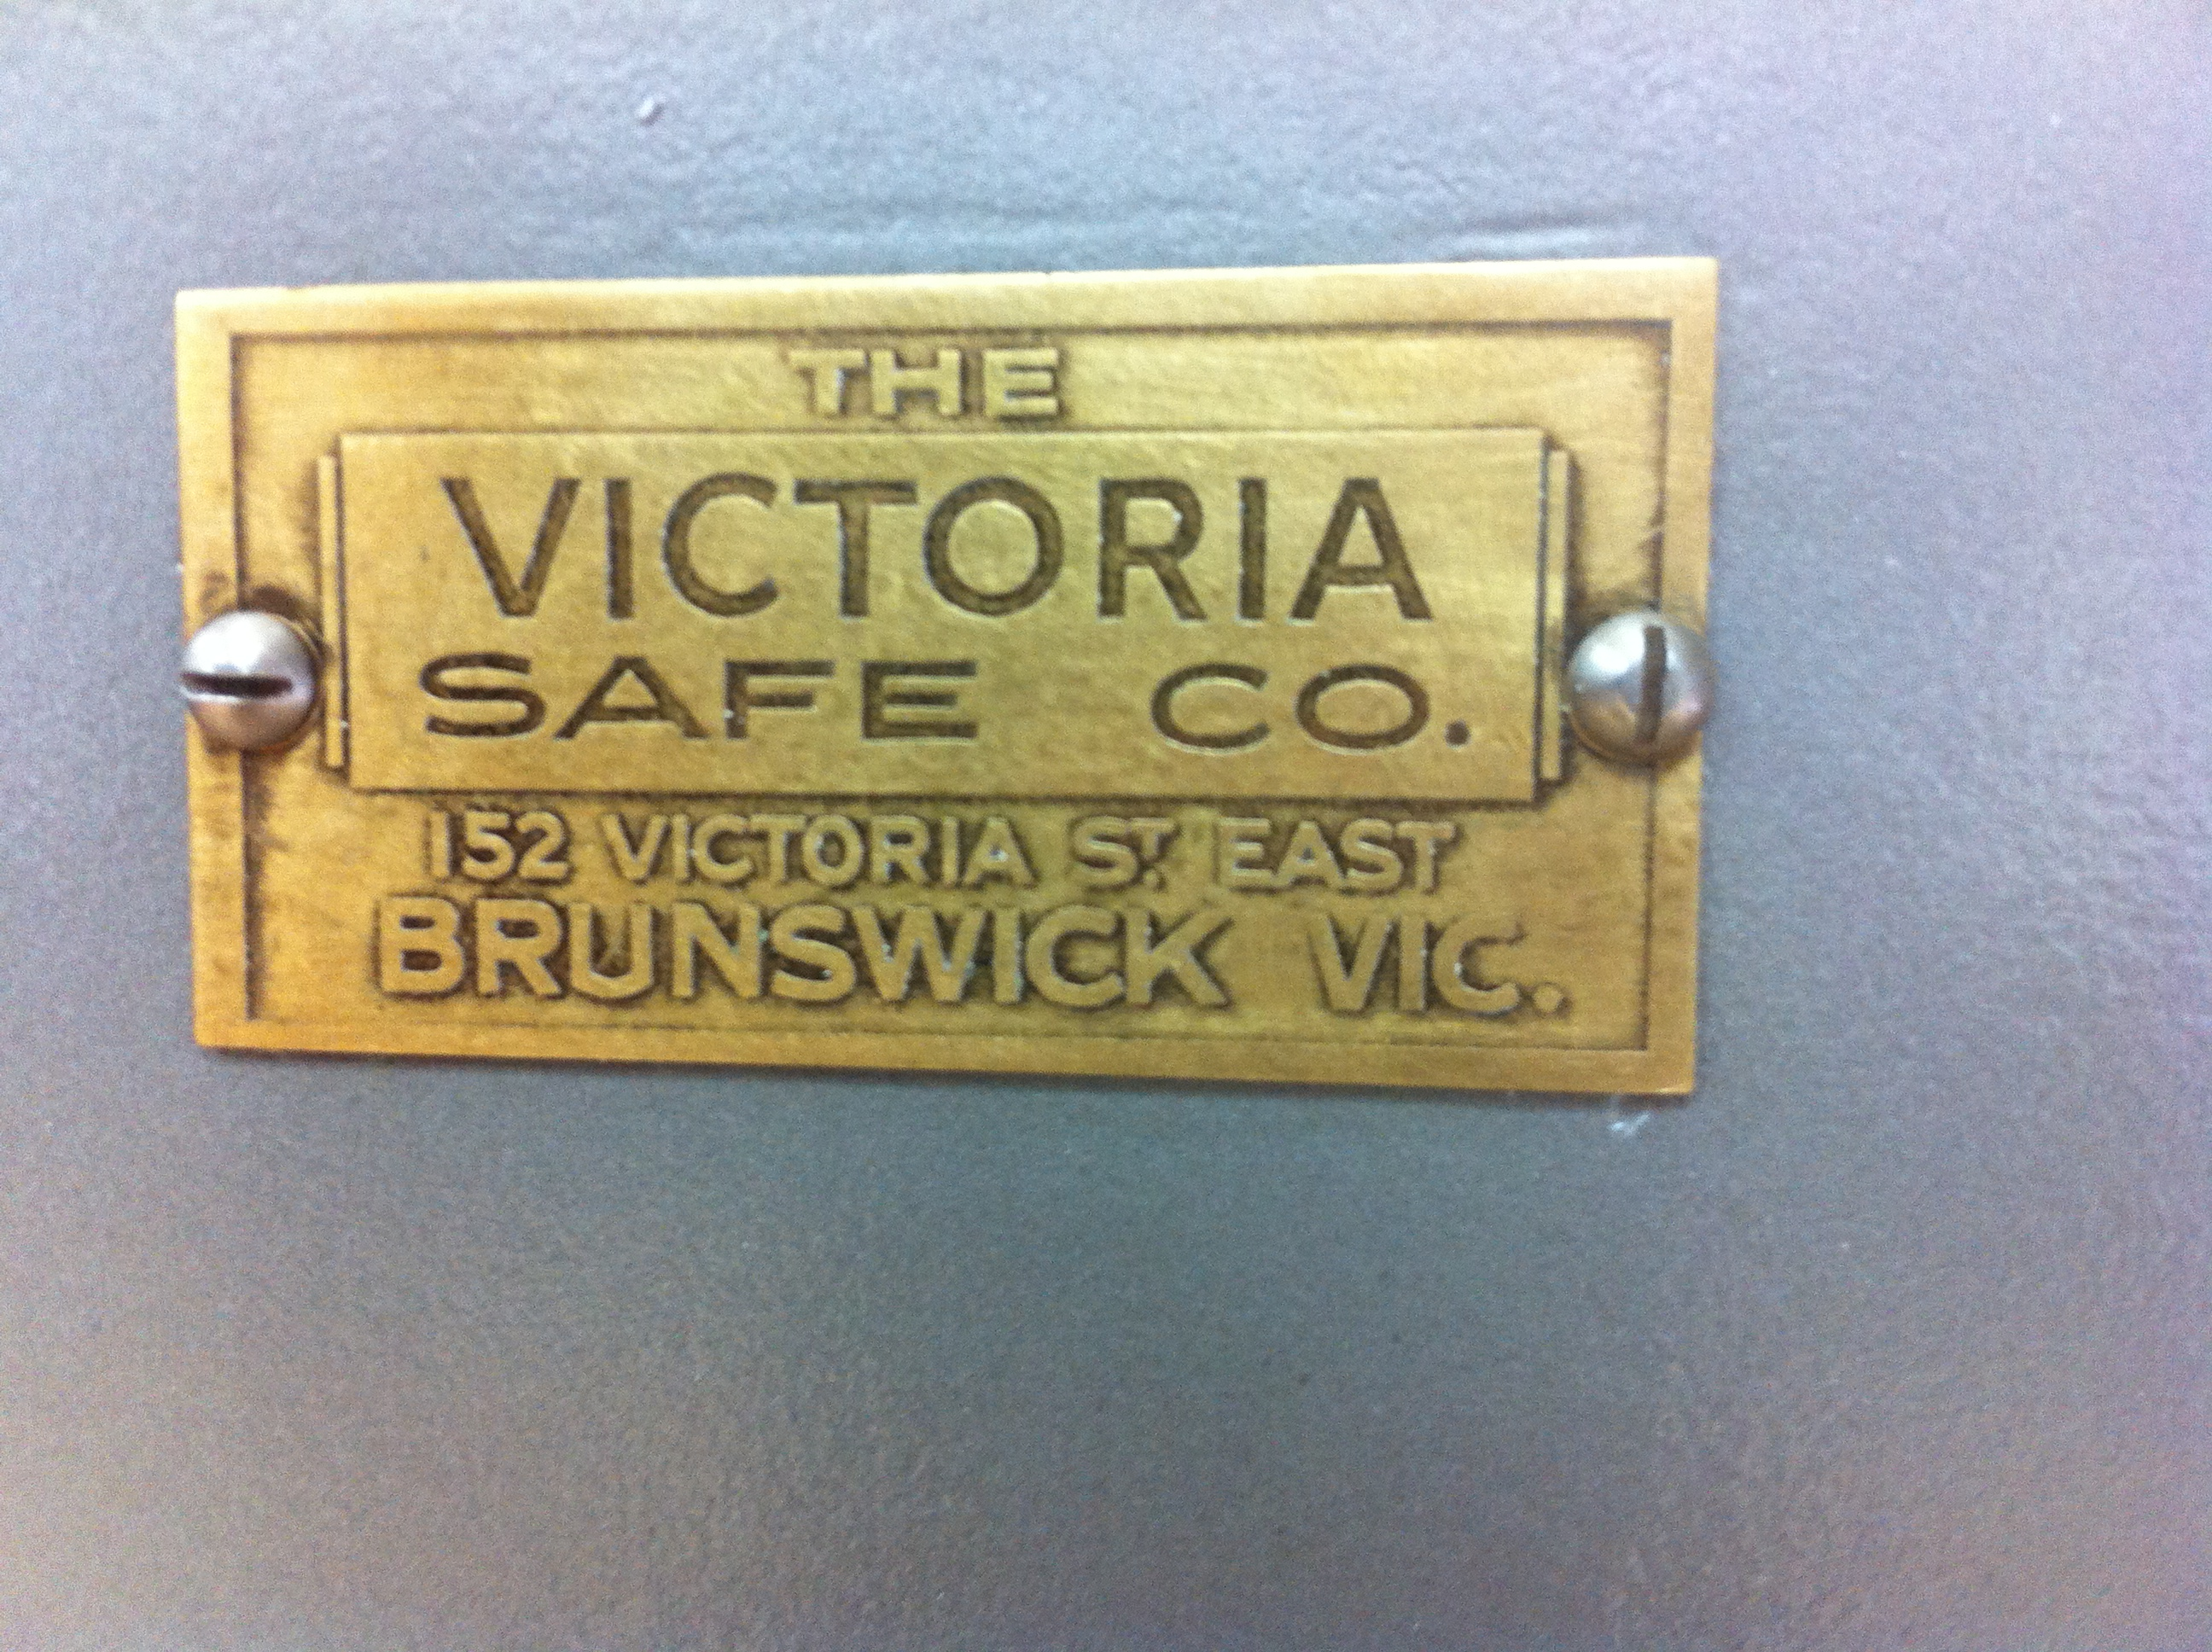 Victoria Safe Co. Brunswick. Vic